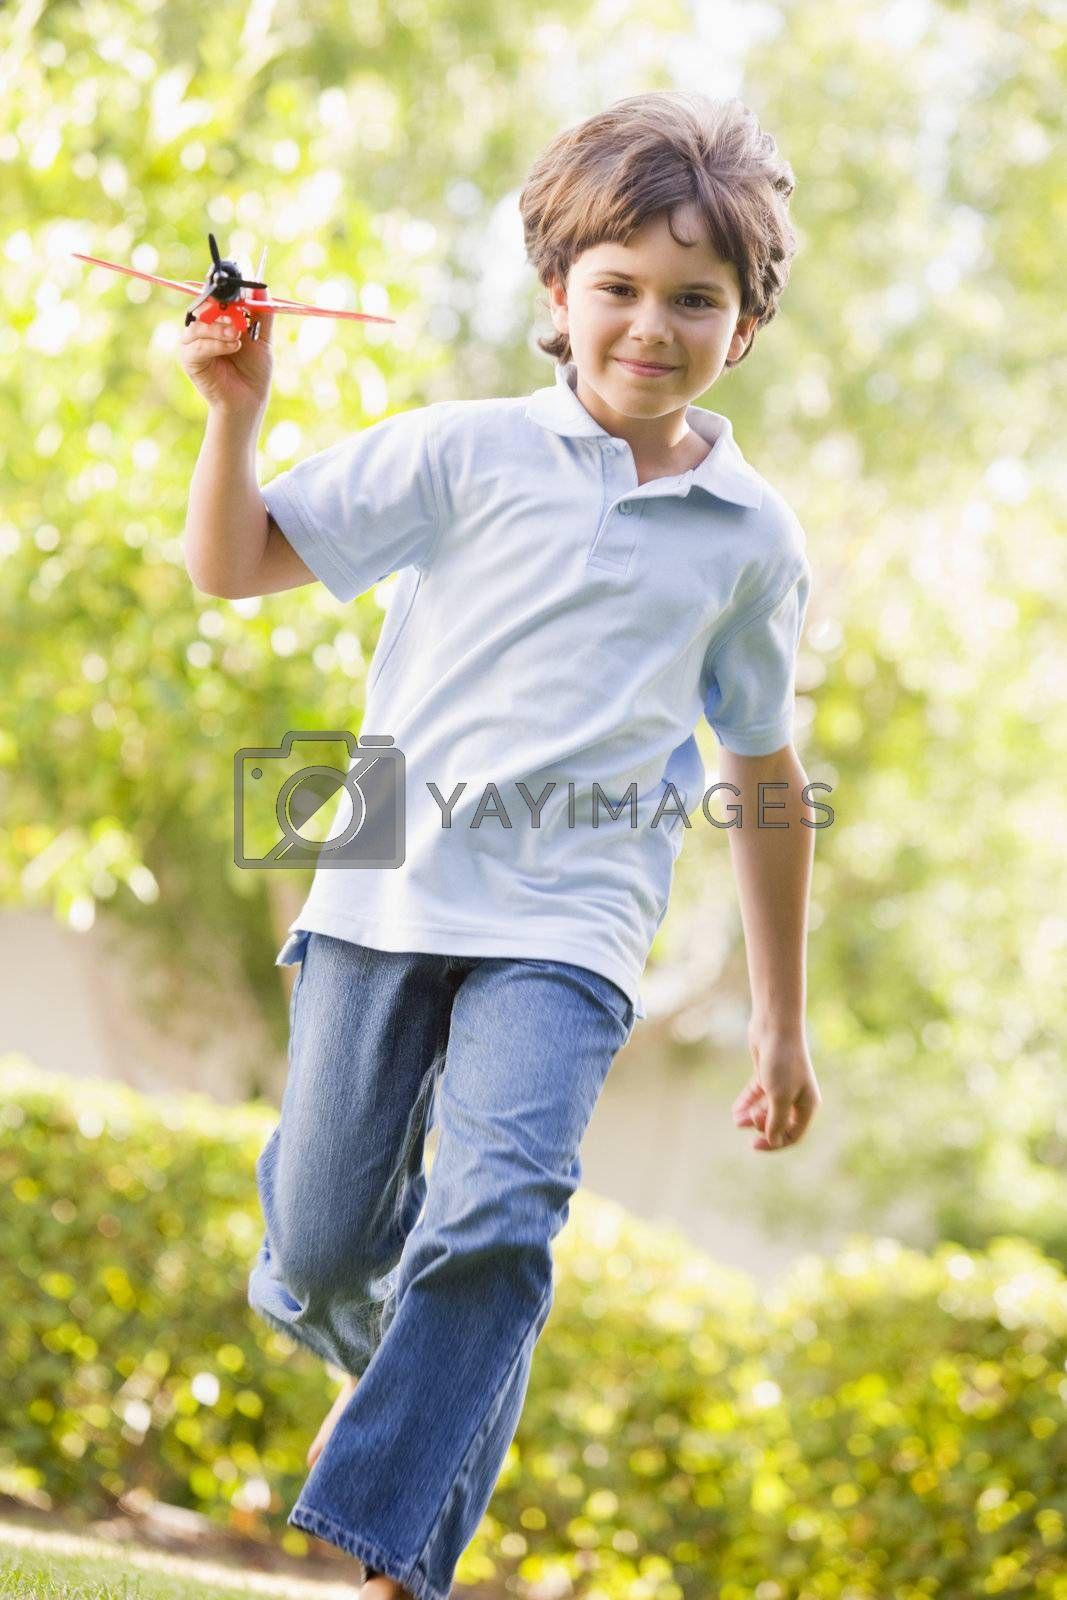 Young boy with toy airplane running outdoors smiling by MonkeyBusiness